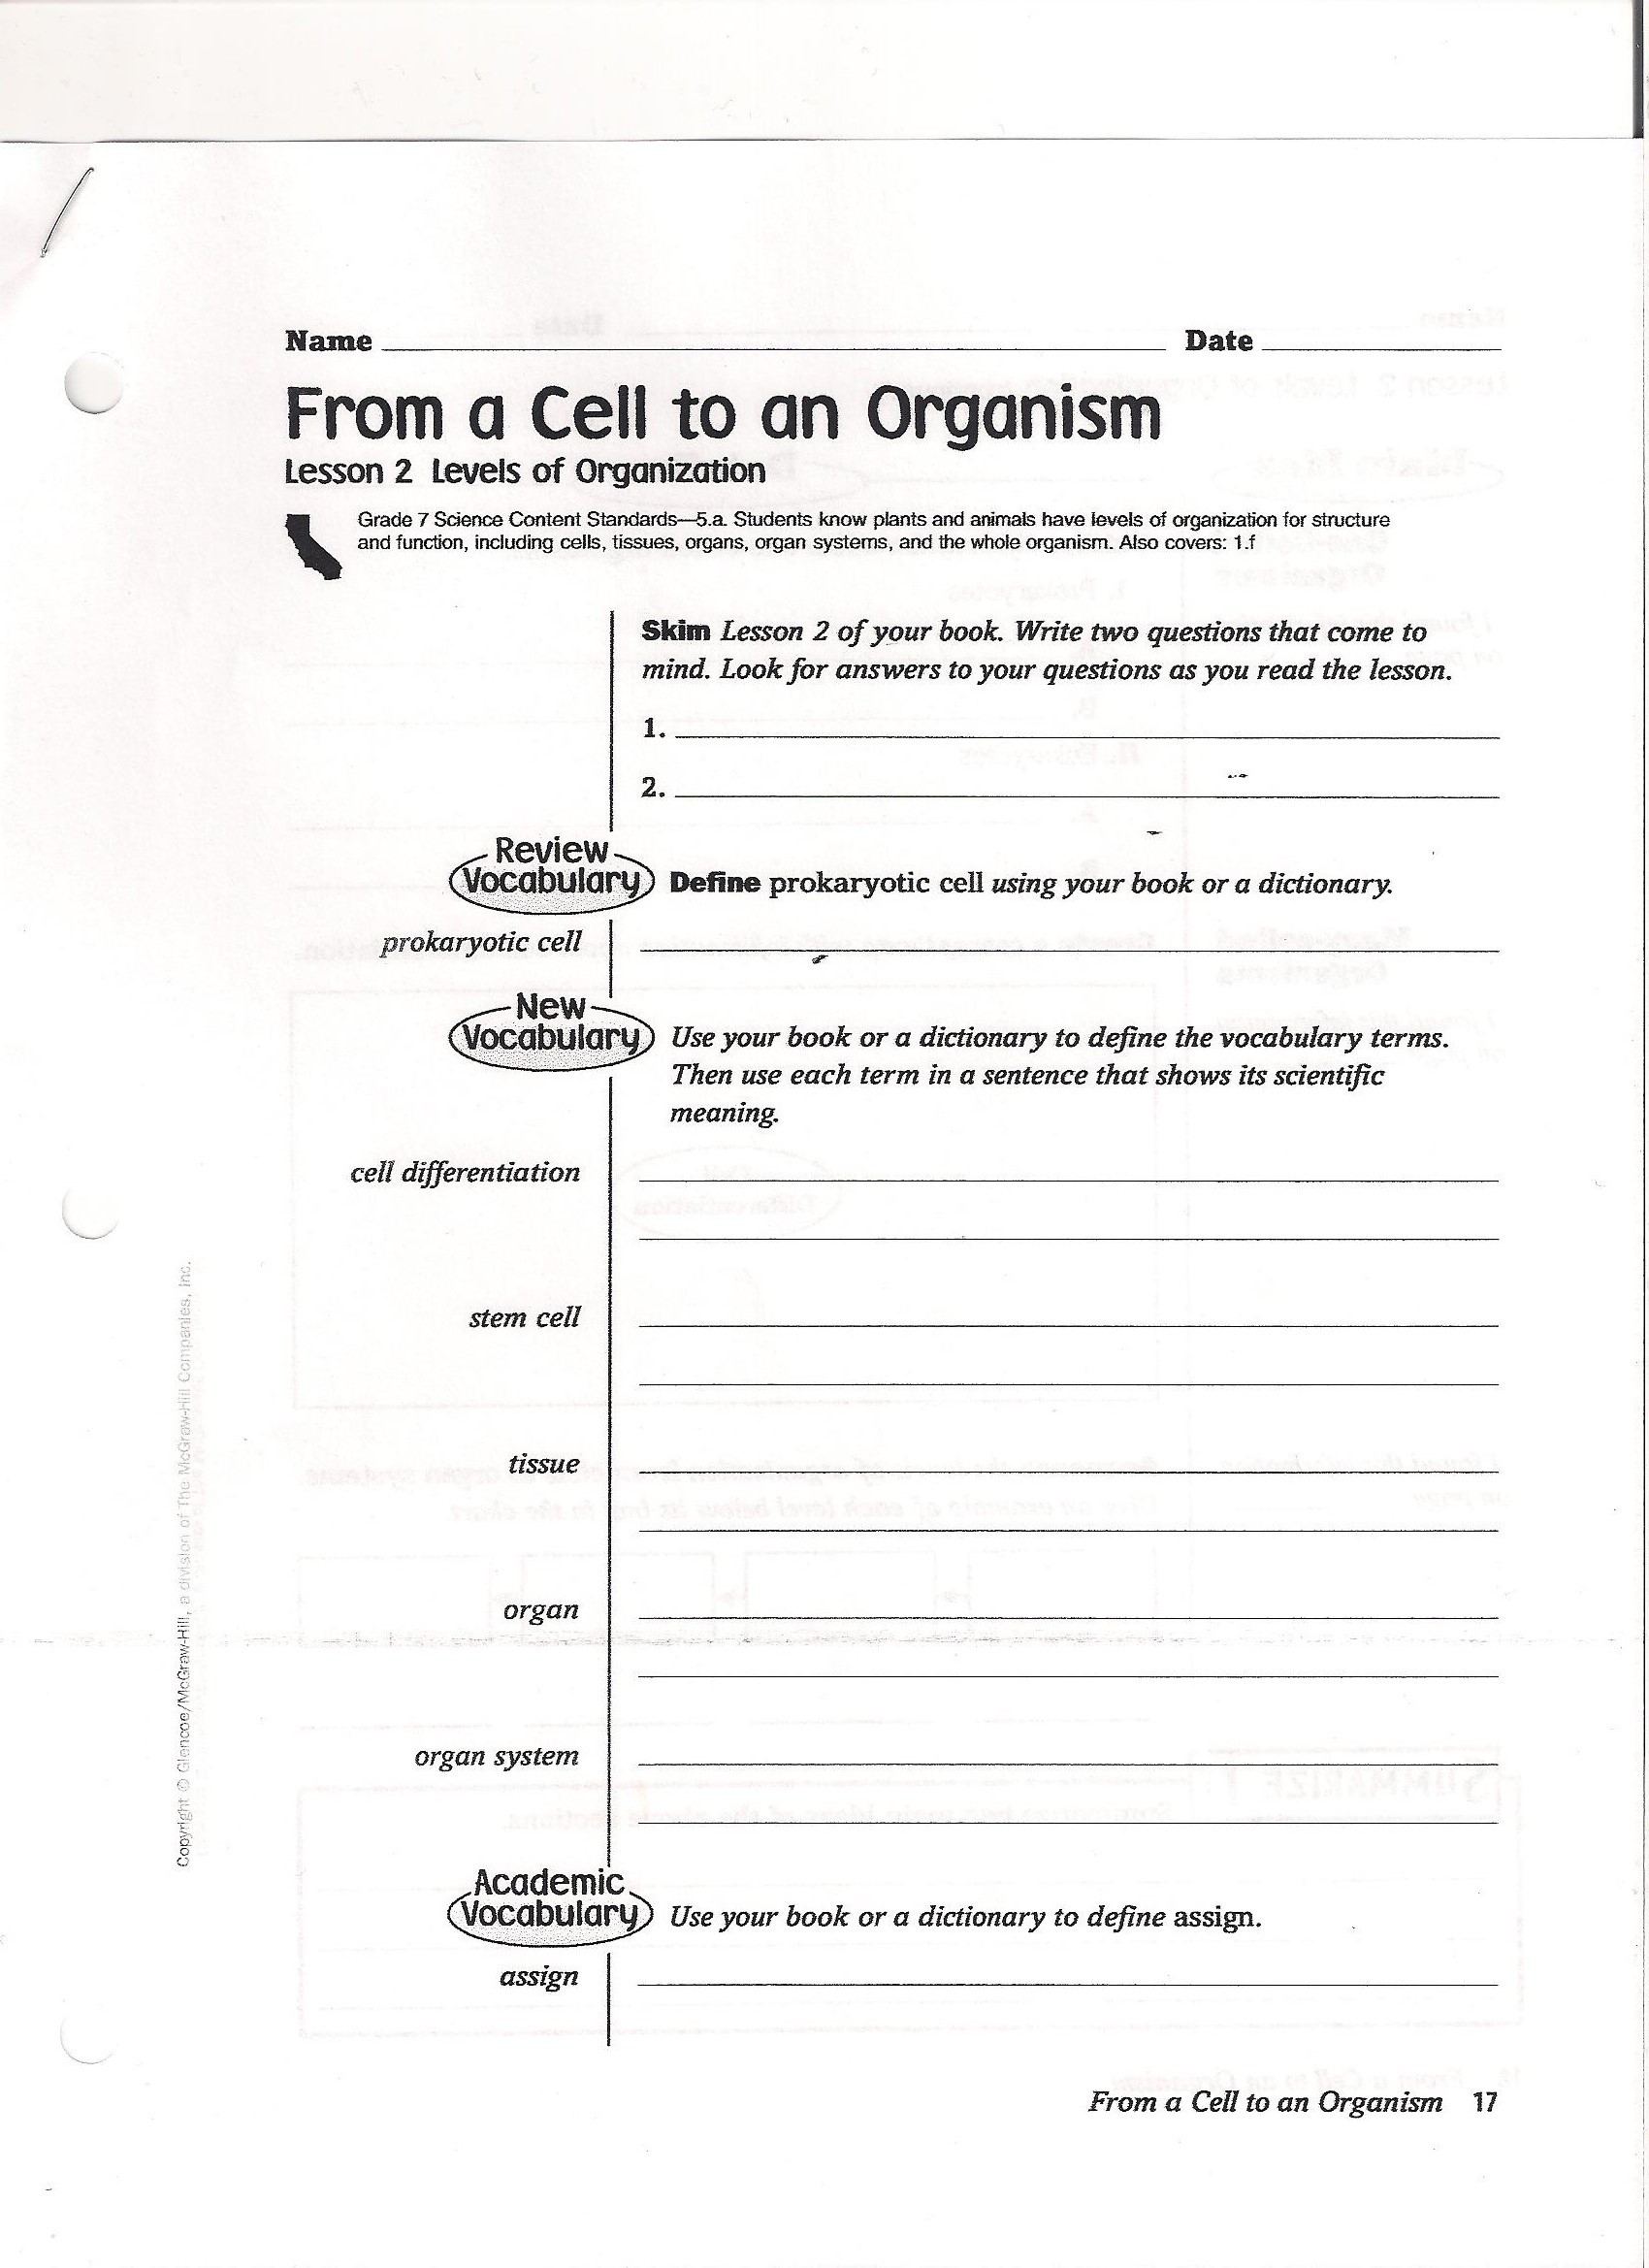 Science 7th Grade Worksheets Unique is Life Science Worksheet Educational 7th Grade Cell